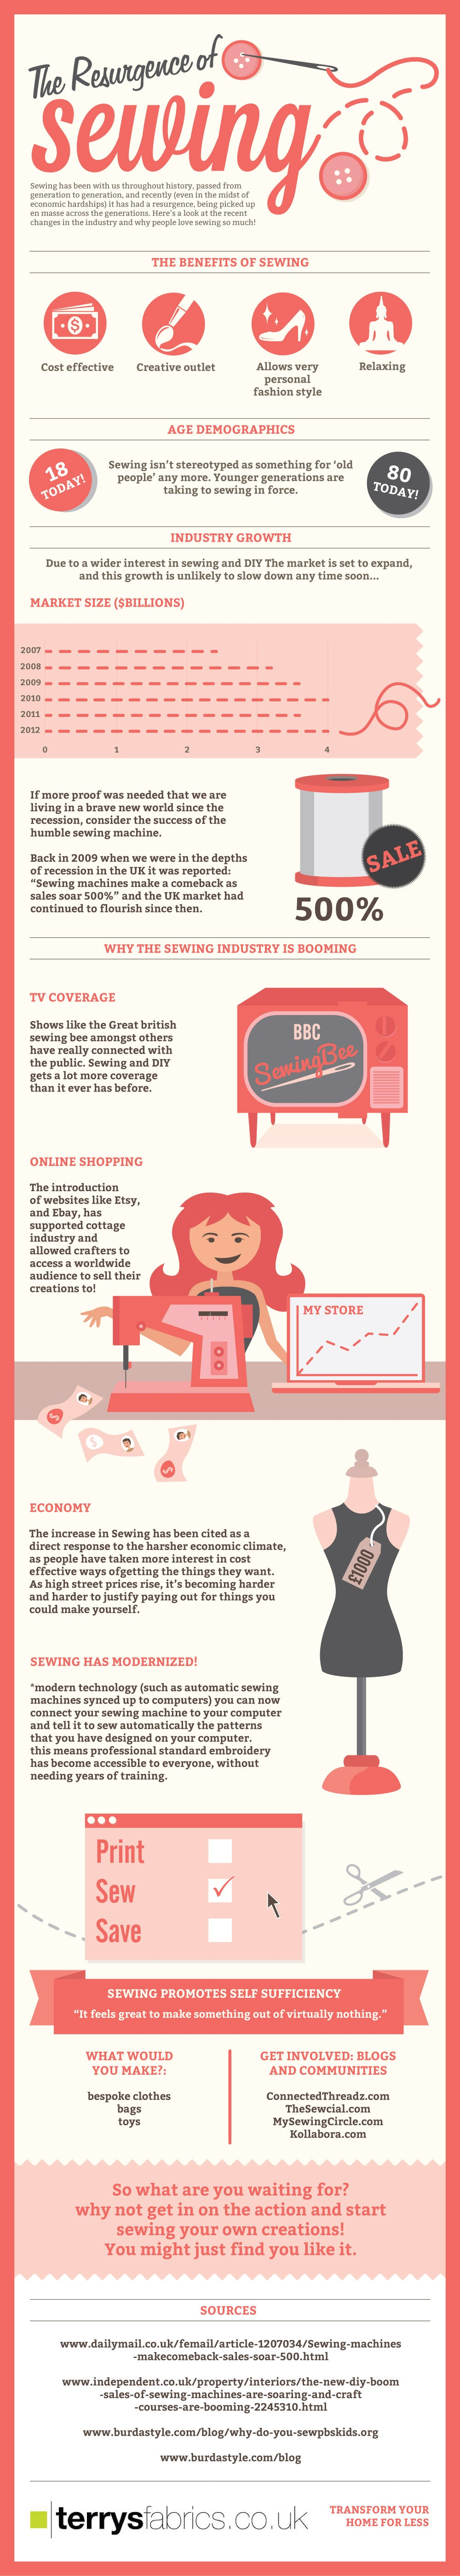 The Resurgence Of Sewing Infographic